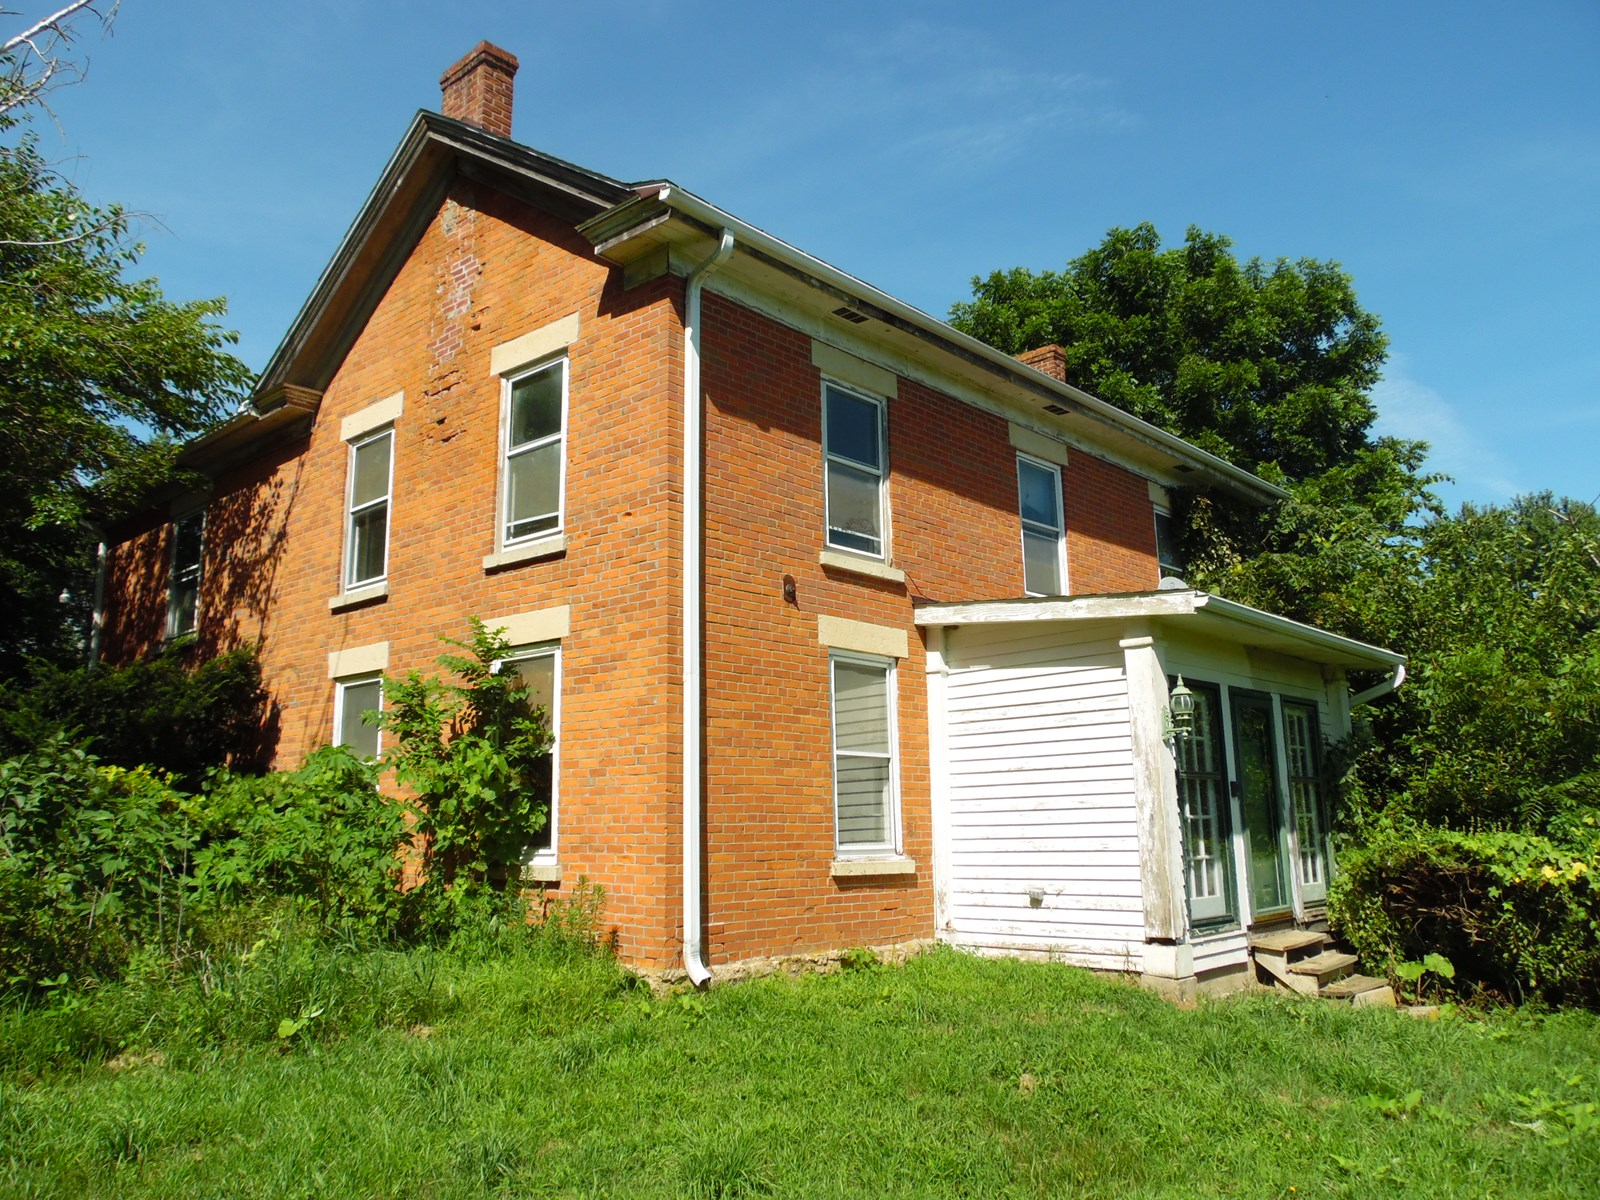 Historic 2 Story Brick Home on 10 Acres in Scales Mound, IL